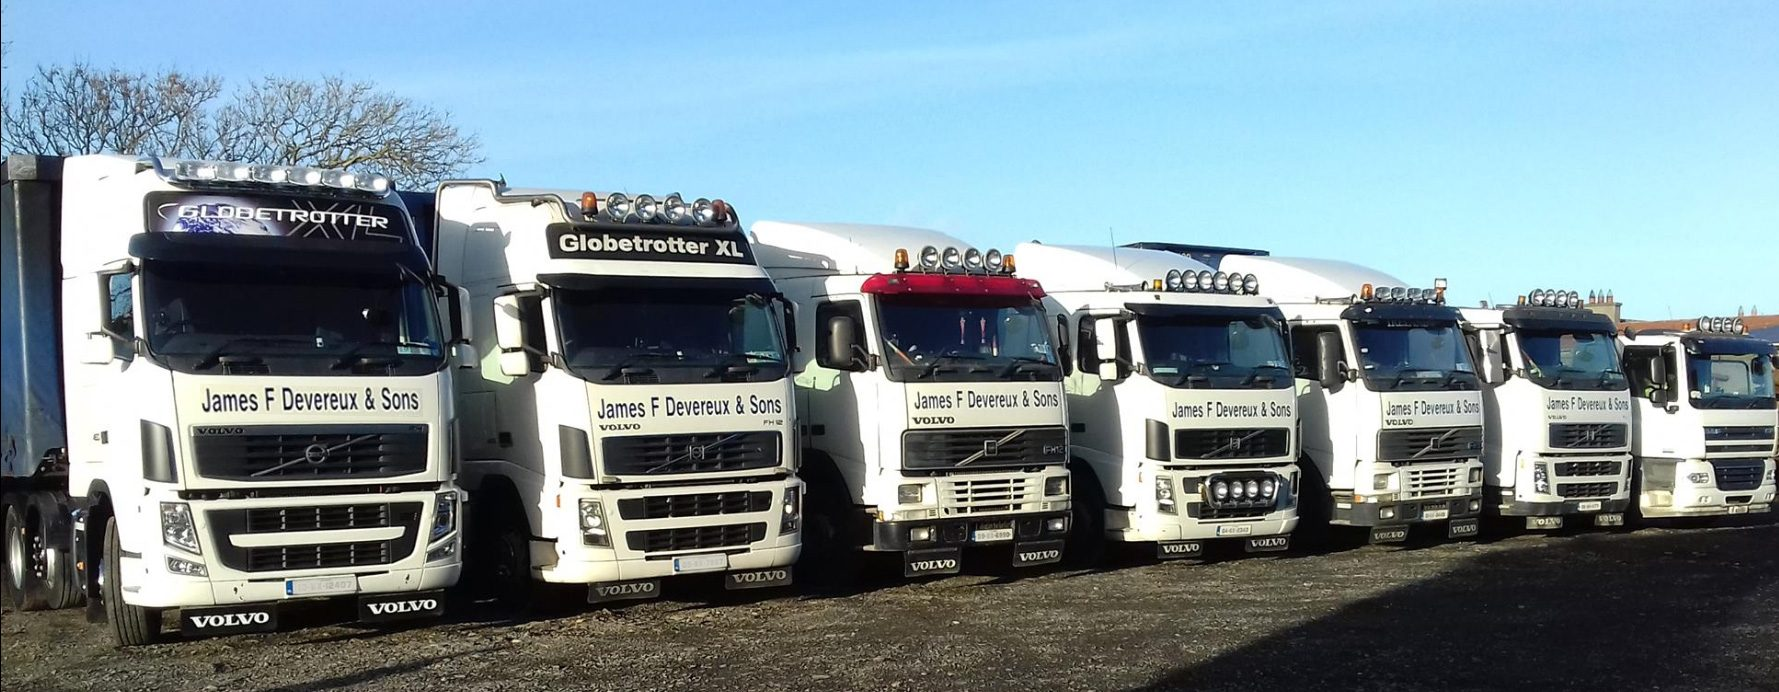 James F Devereux & Sons Tranport Ltd - Wexford, Ireland -Header